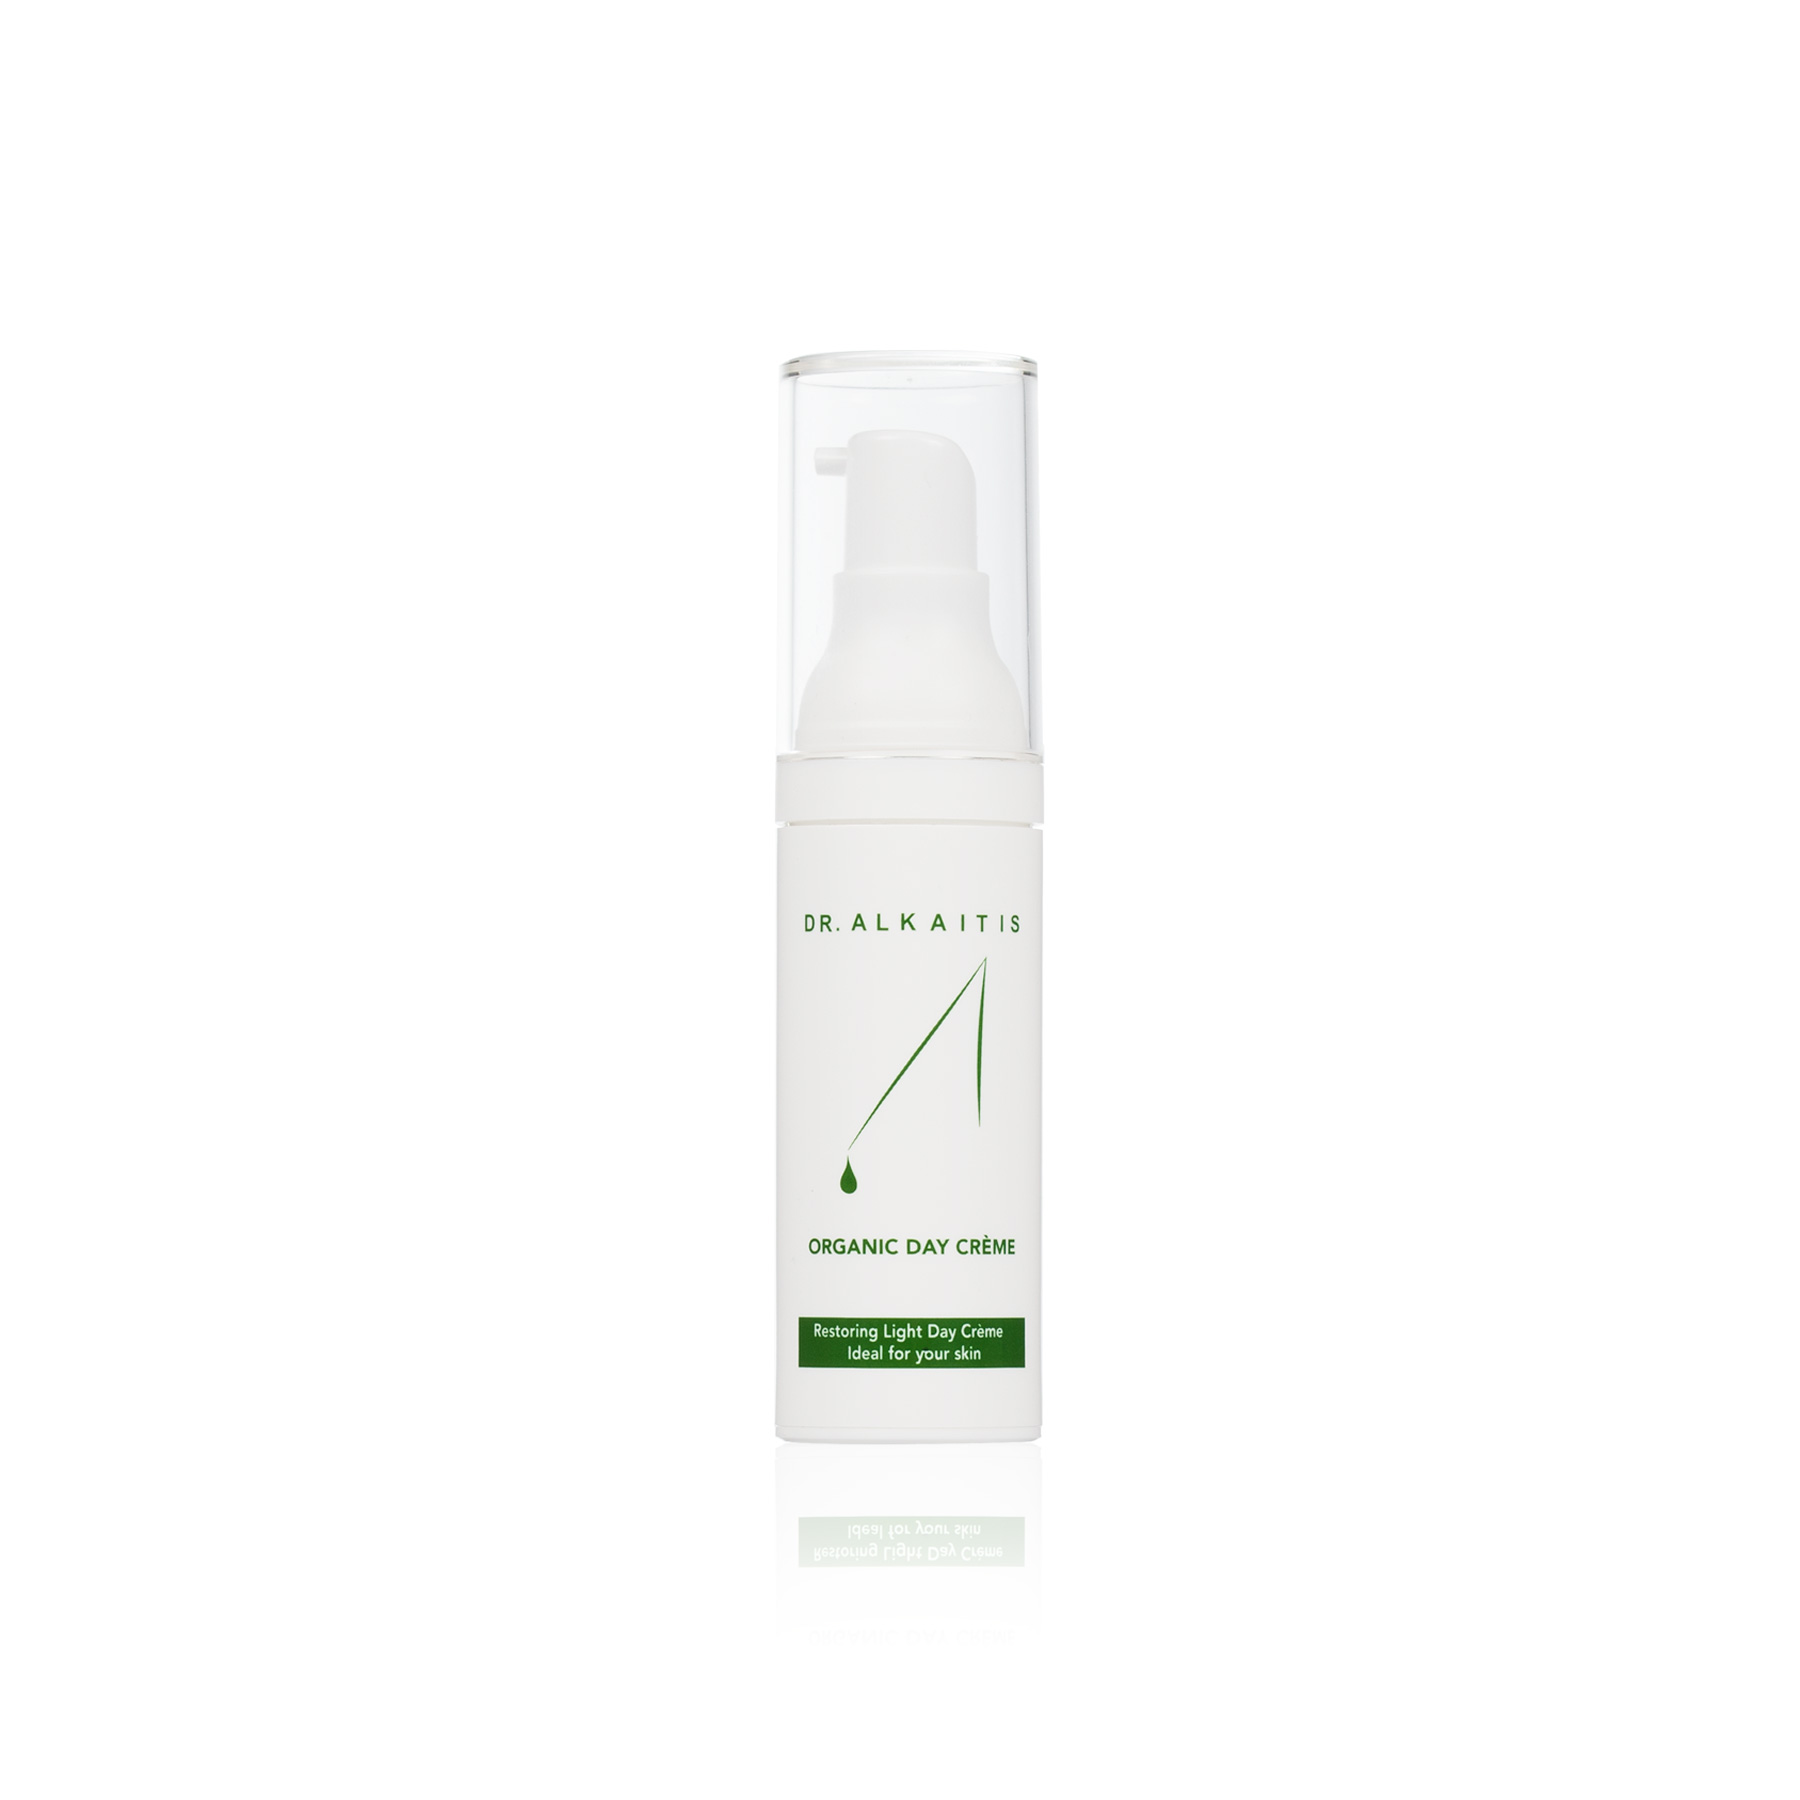 Organic Day Creme - $72   Waxy Cream lotion  Zero greasy feel and won't clog pores. Great for combo skin with some dryness.